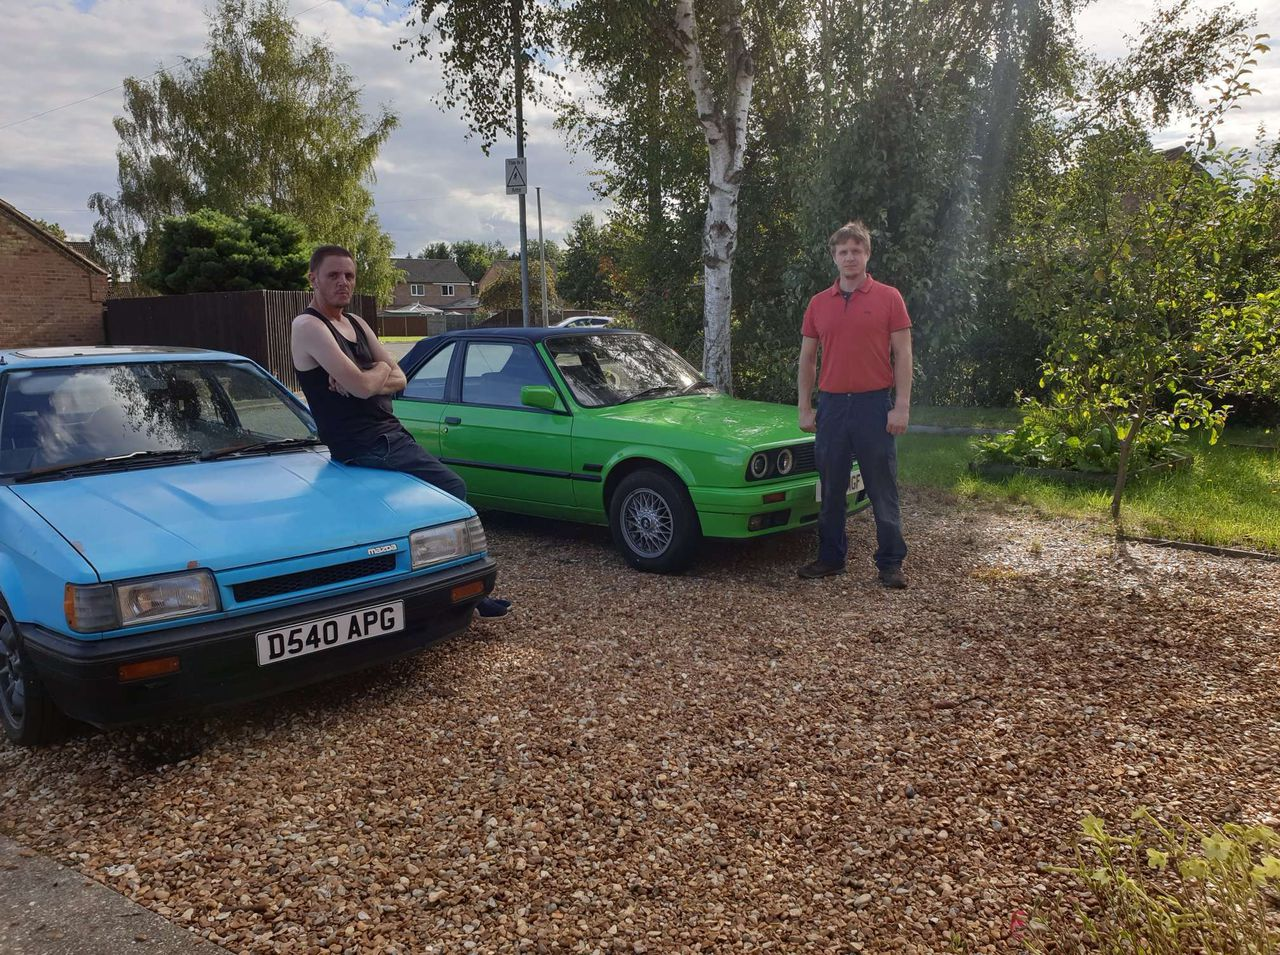 Me and Alex with our respective cars.